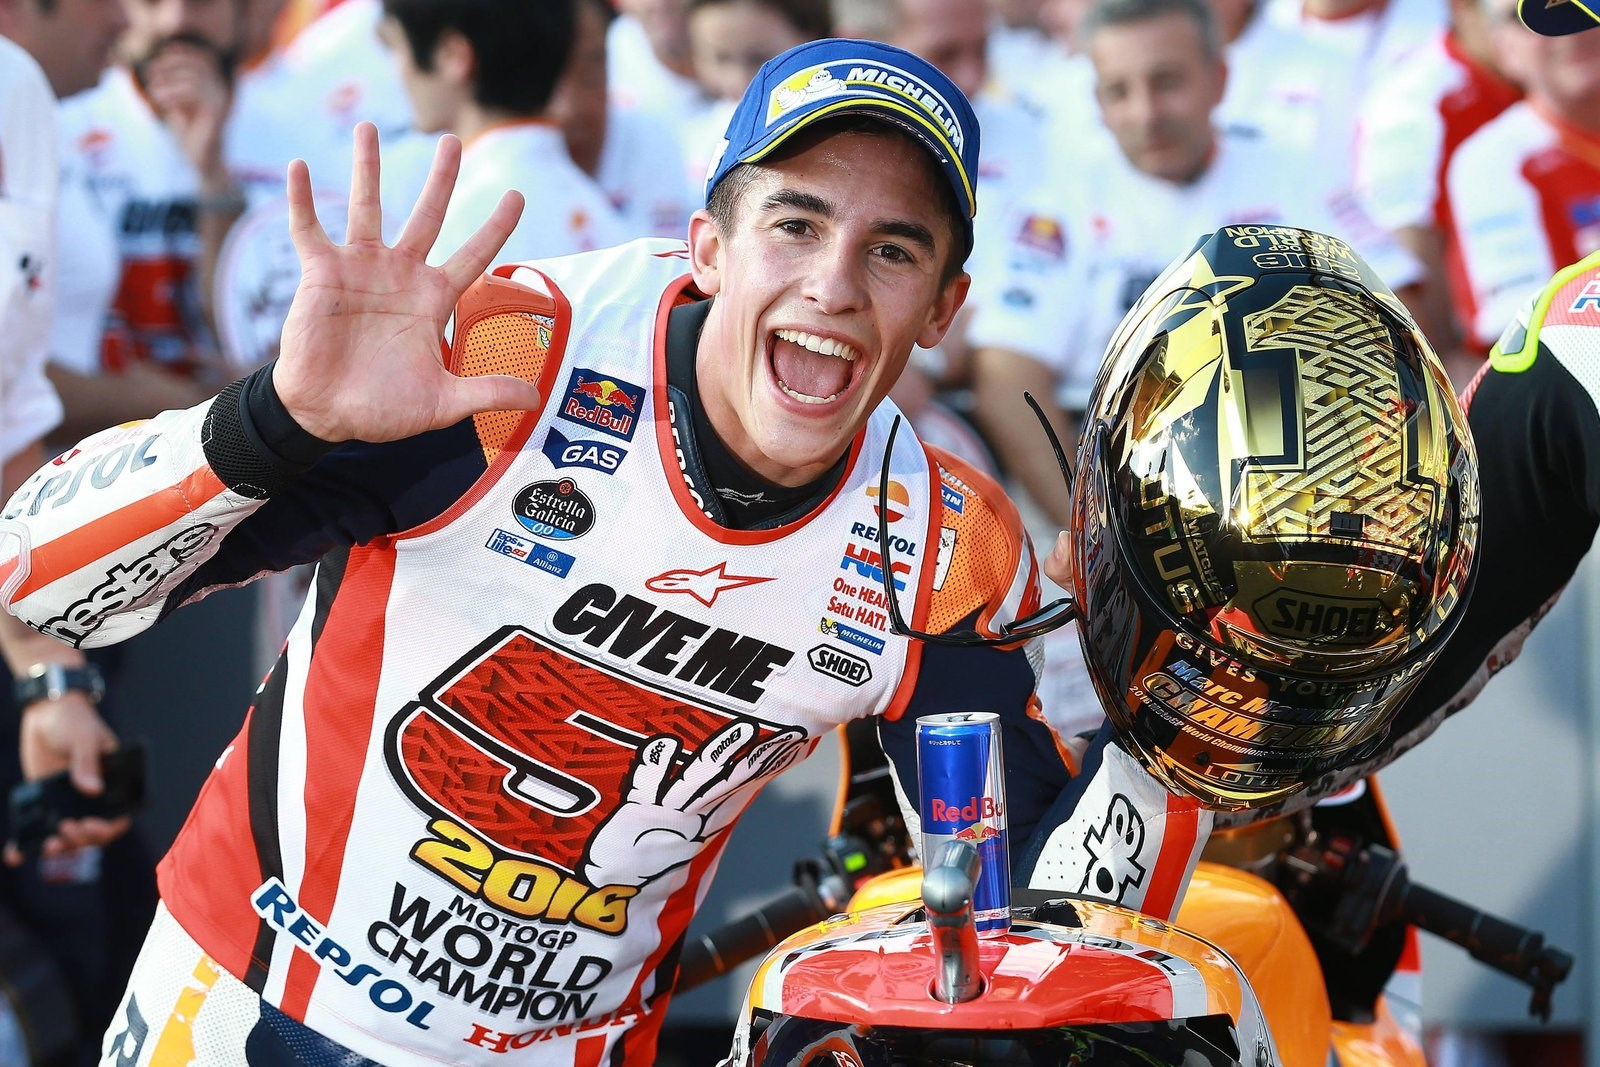 marquez-secured-his-fifth-title-in-japan.jpg